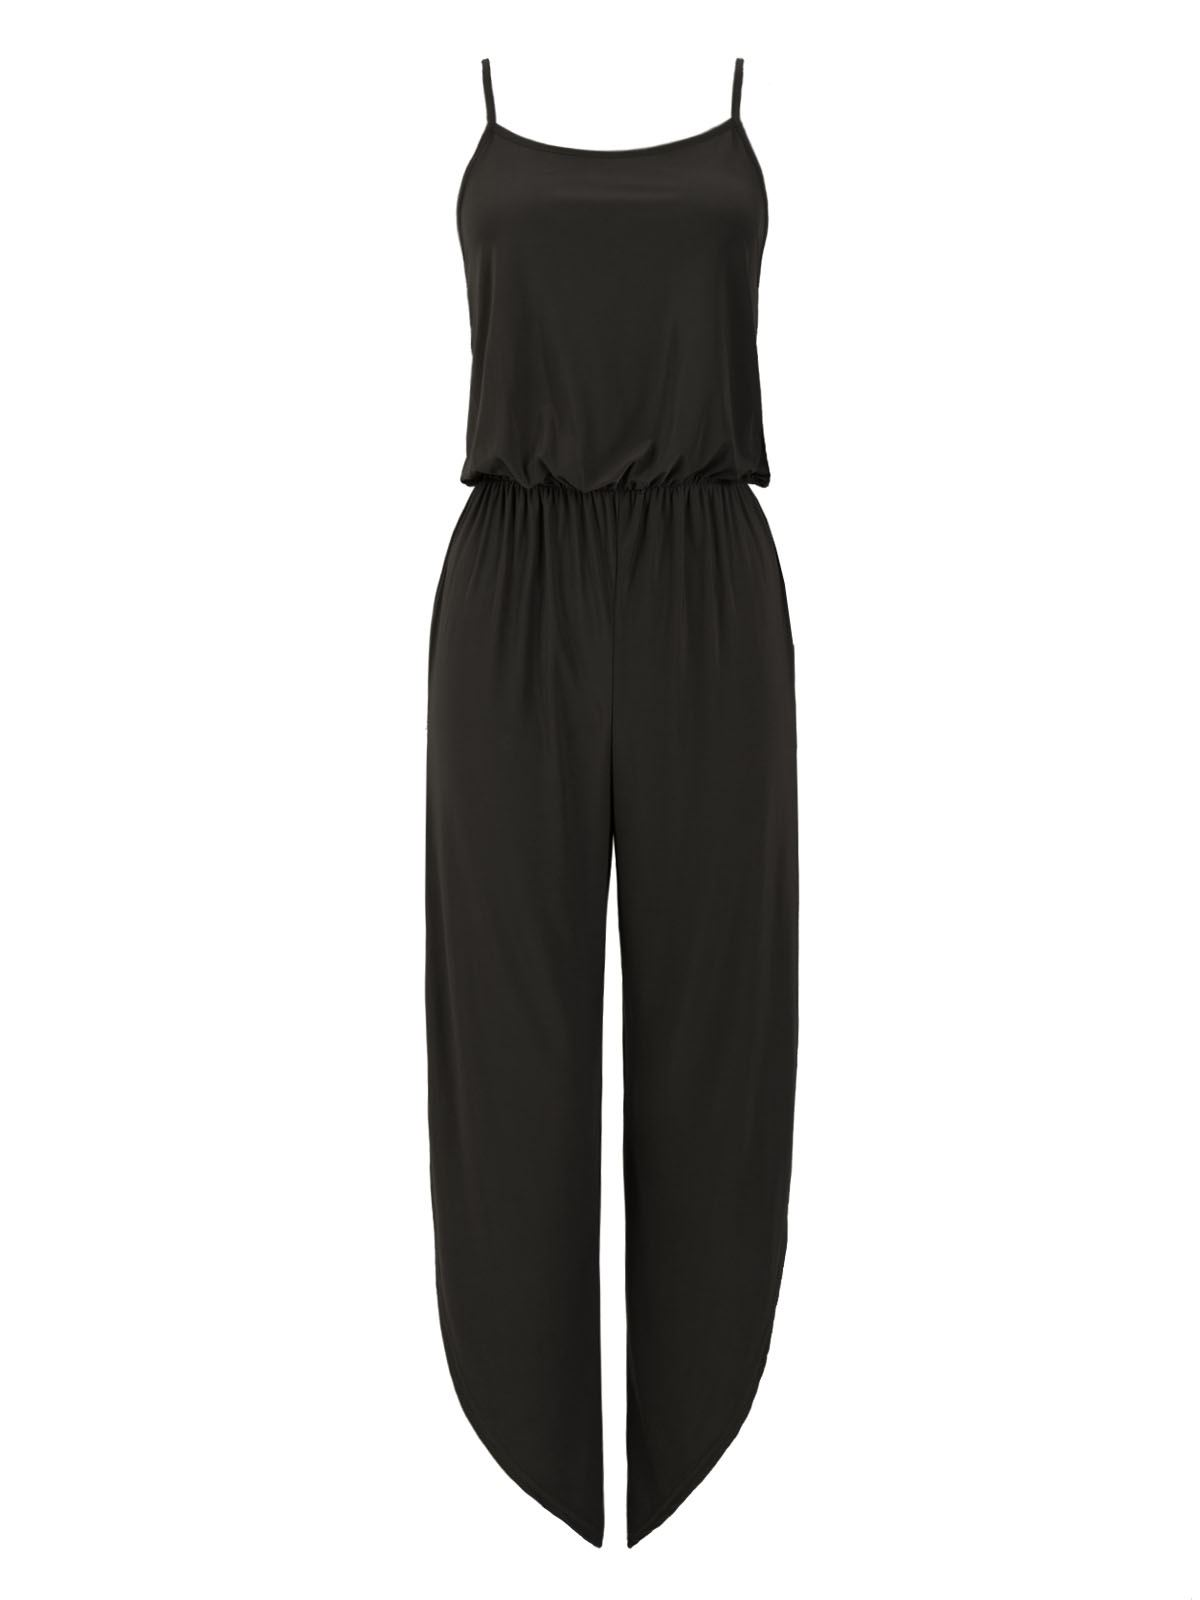 ladies womens side slit casual party celeb inspired strappy stretch